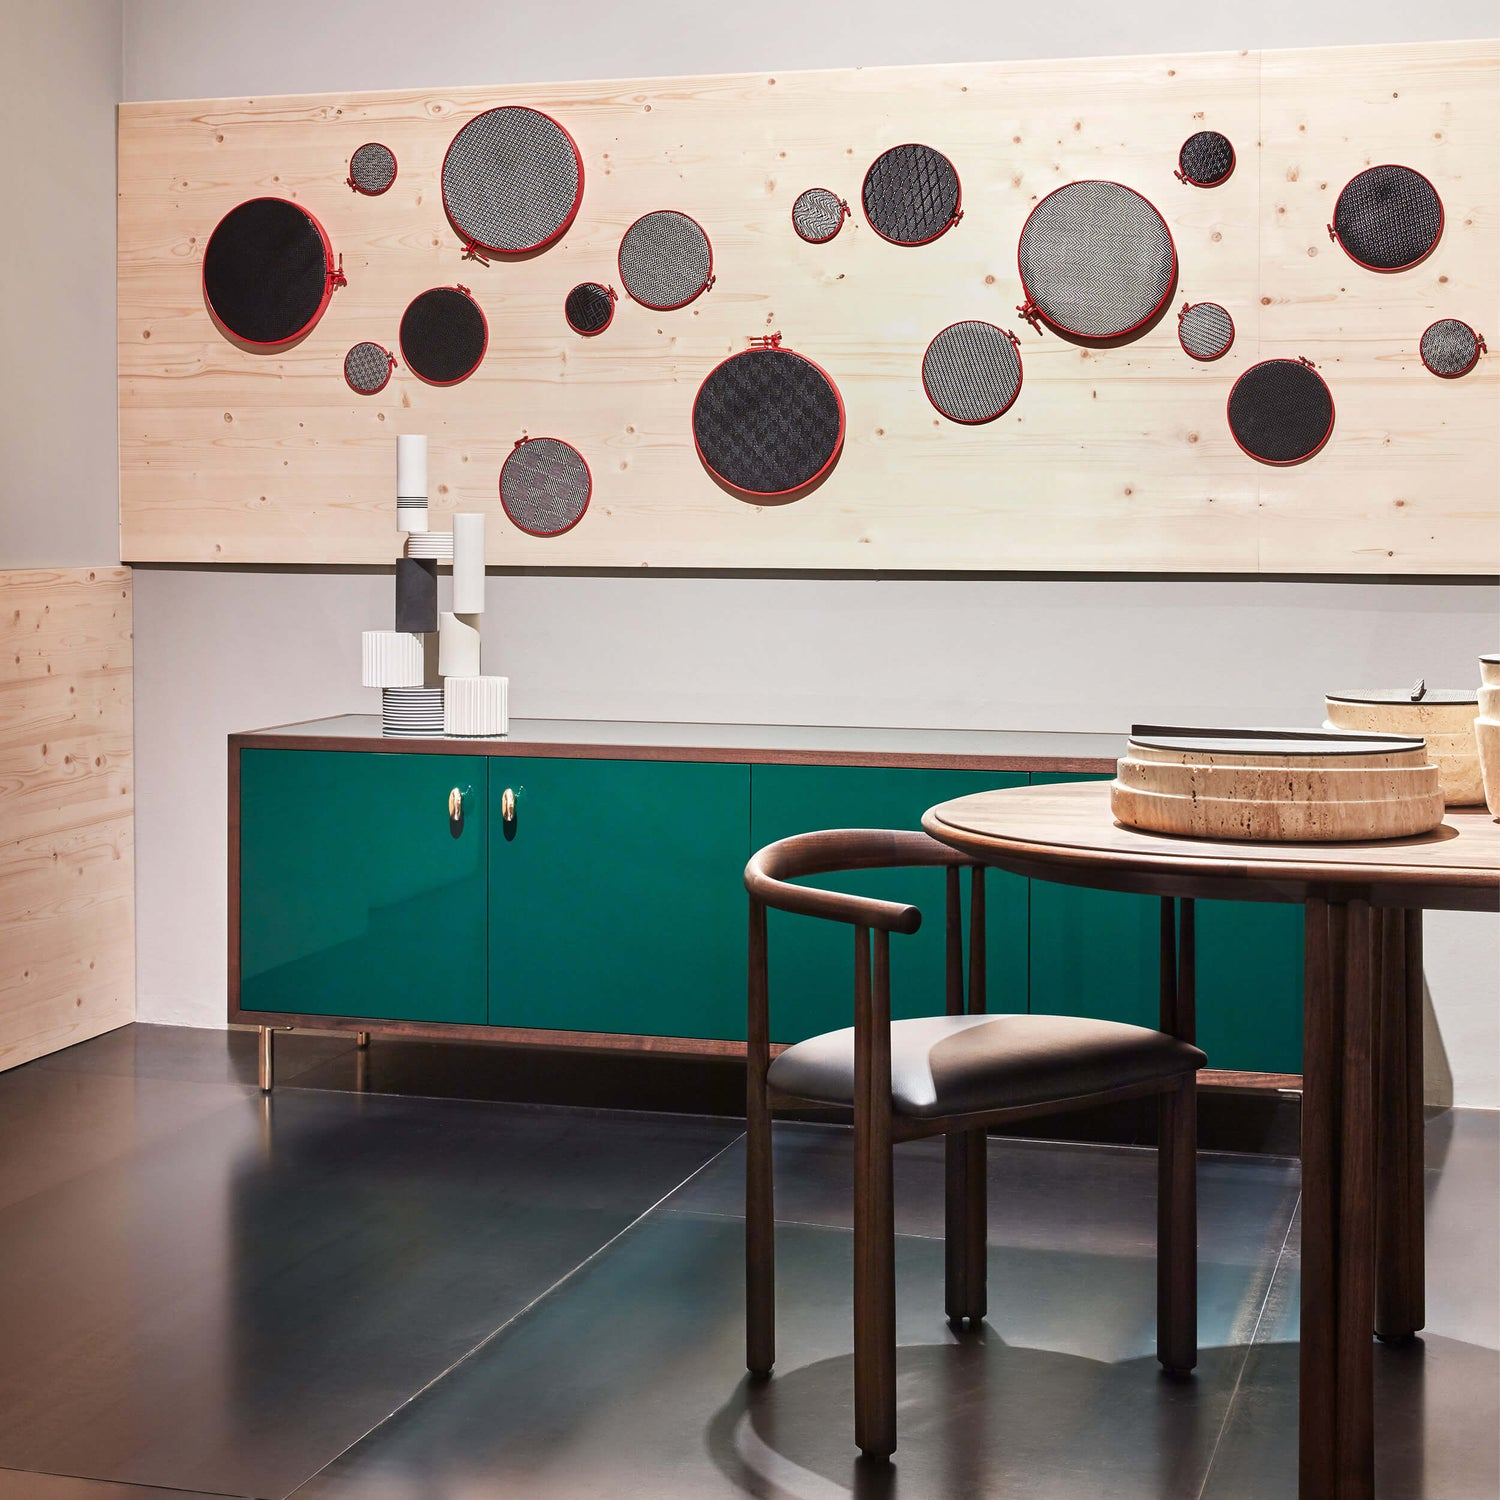 product-color-Verde foresta/Noce oliato nero,Green forest/Black oiled walnut